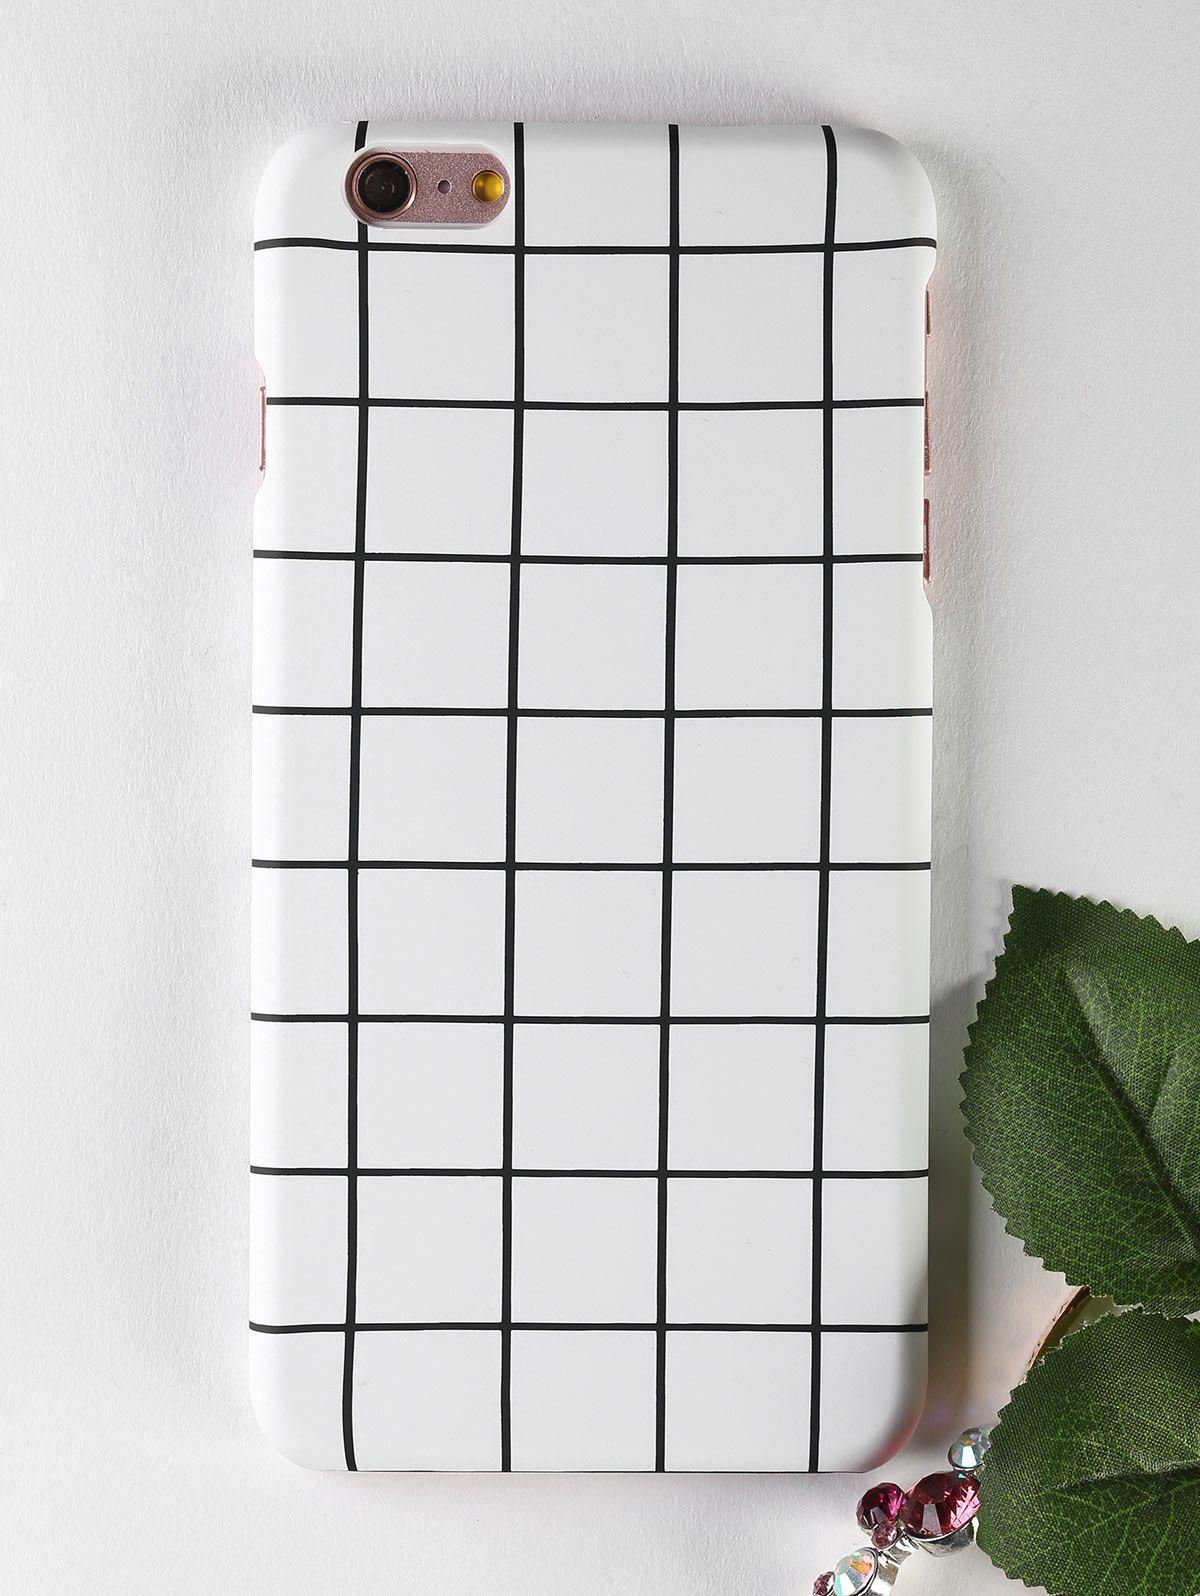 Grid Pattern Soft Cell Phone Case For Iphone - WHITE FOR IPHONE 6 PLUS / 6S PLUS